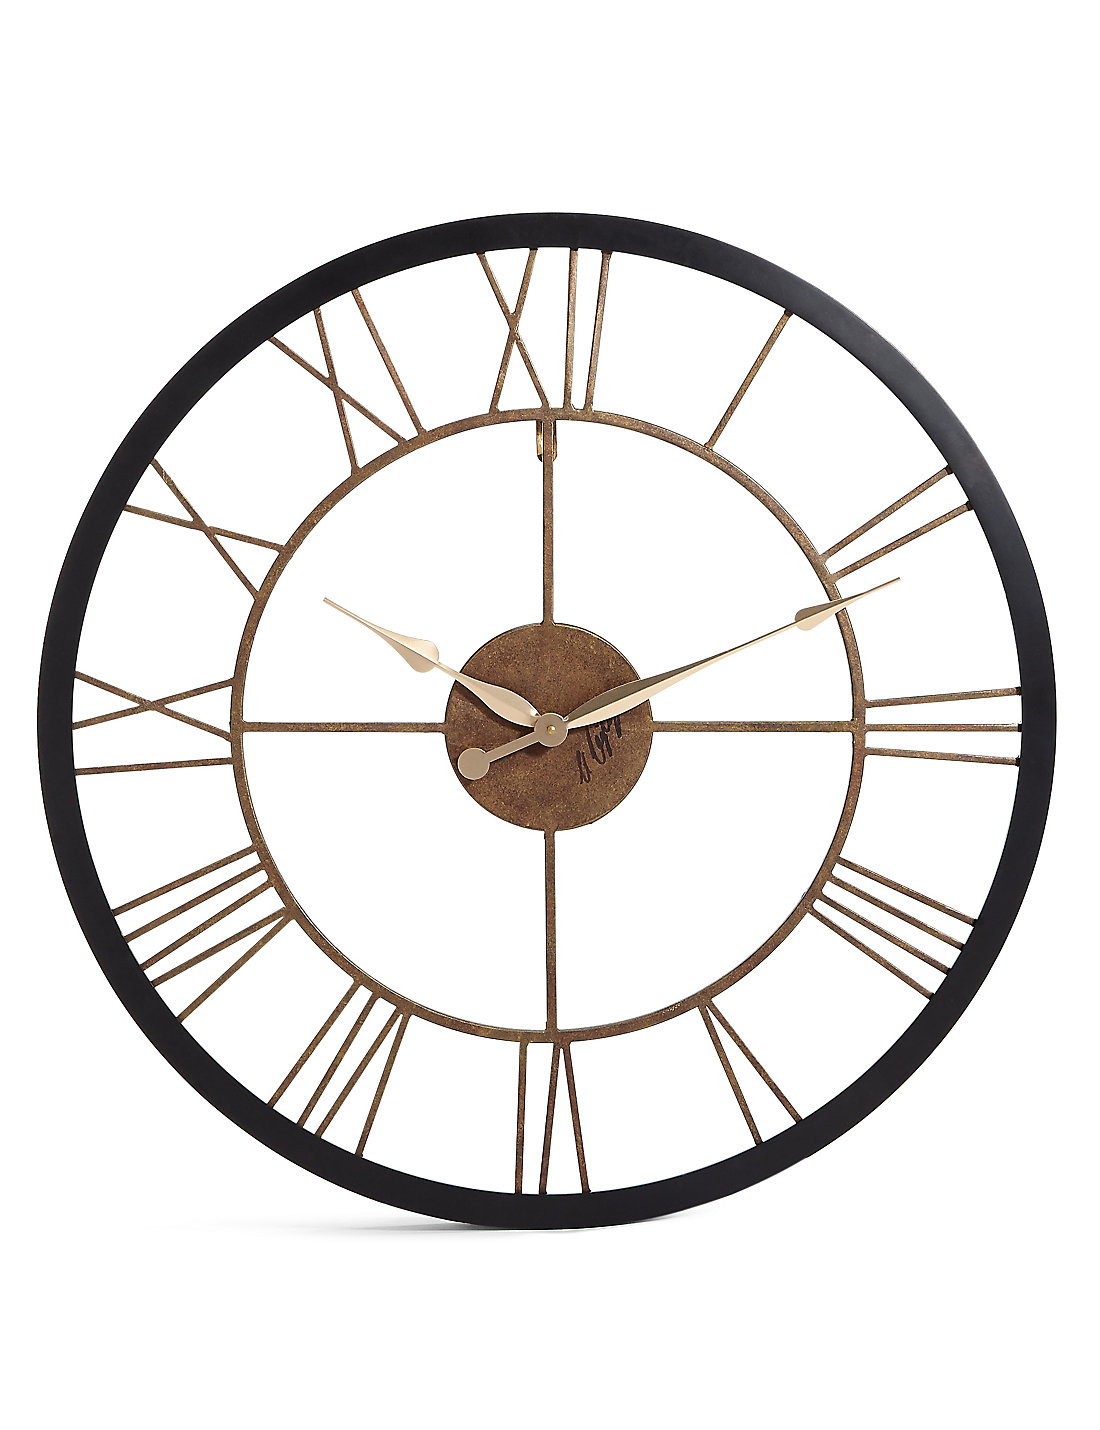 Mirrors wall art clocks for your home ms rustic wall clock amipublicfo Choice Image